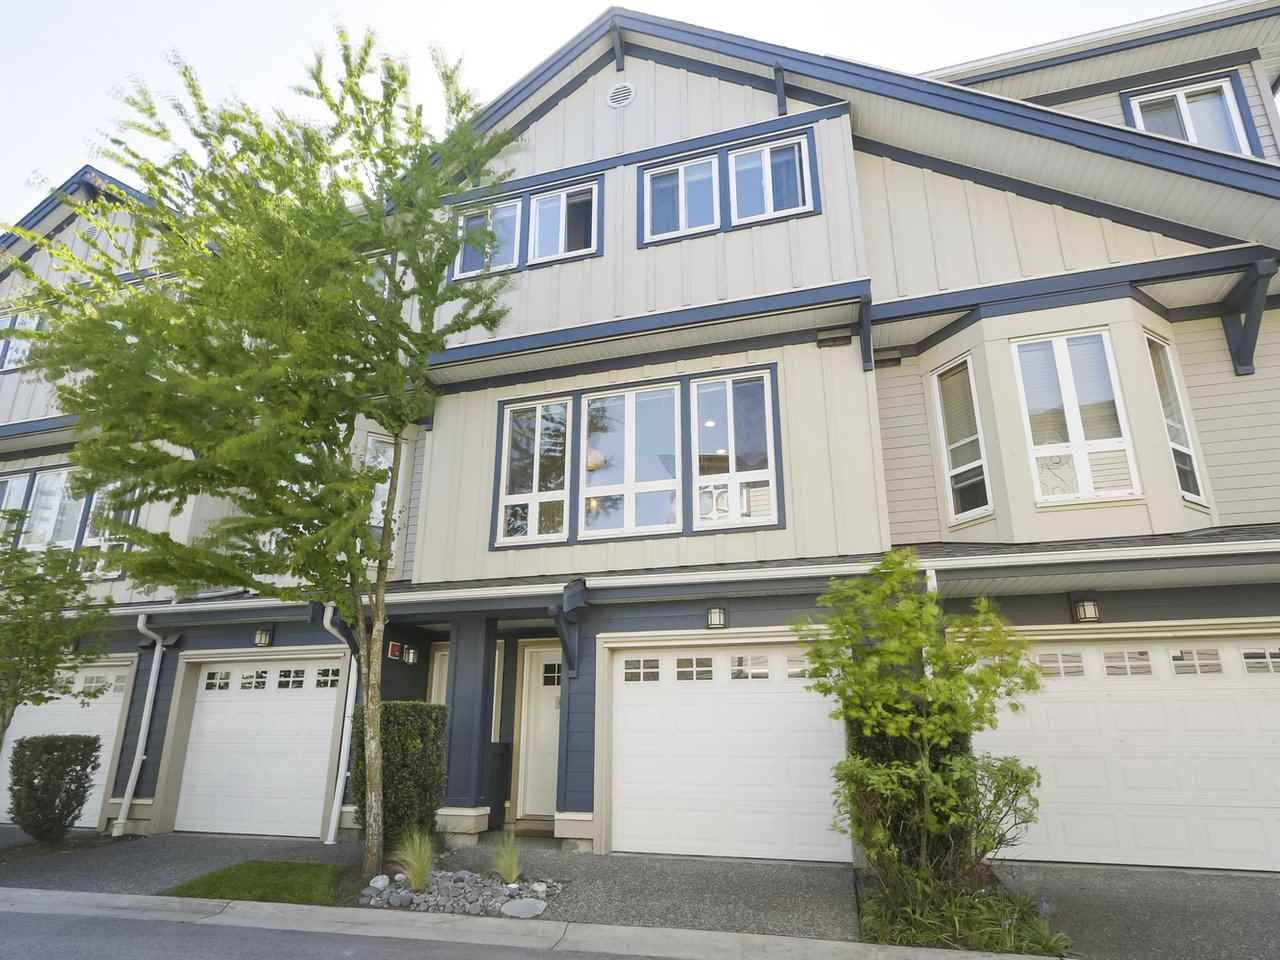 Main Photo: 6 160 PEMBINA STREET in New Westminster: Queensborough Townhouse for sale : MLS®# R2369111